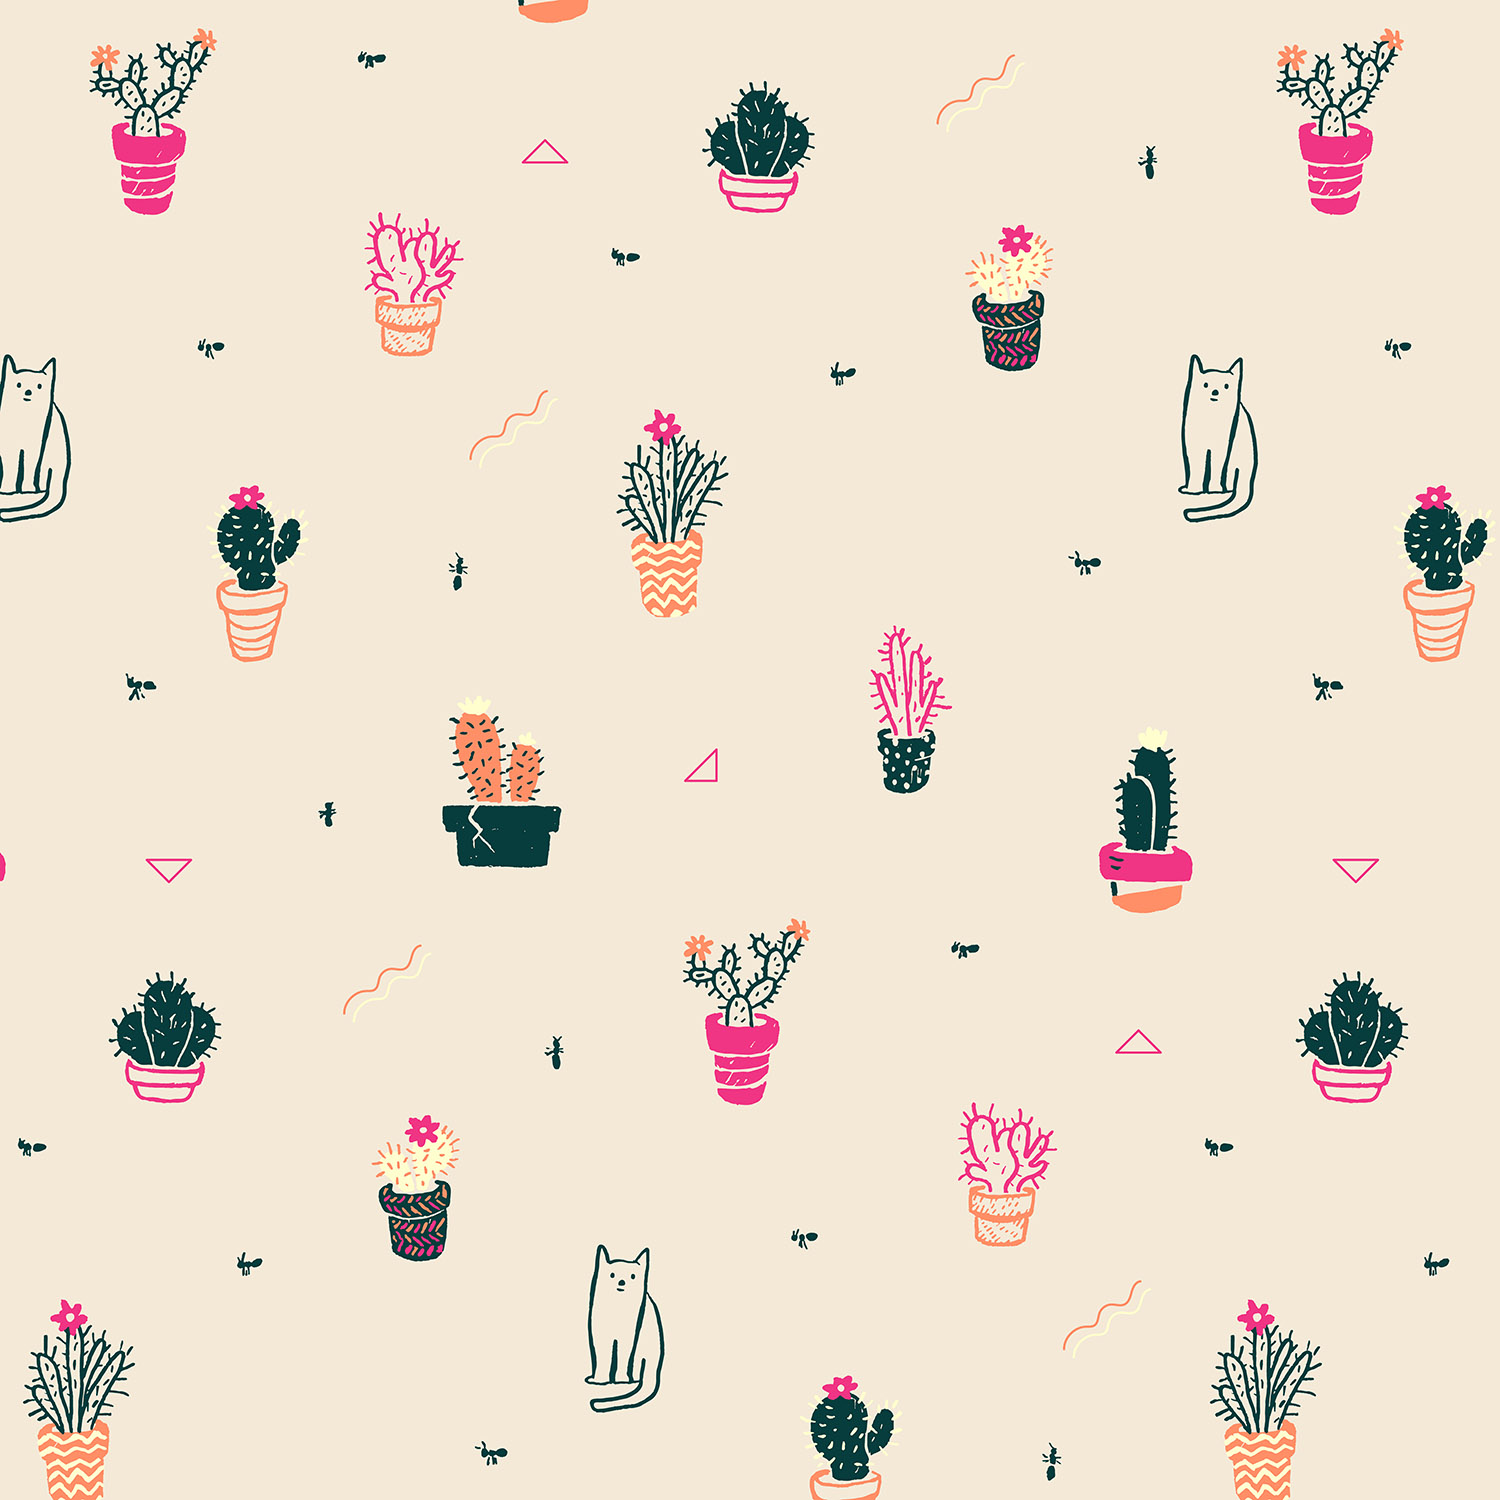 Cacti, Cats, and Ants